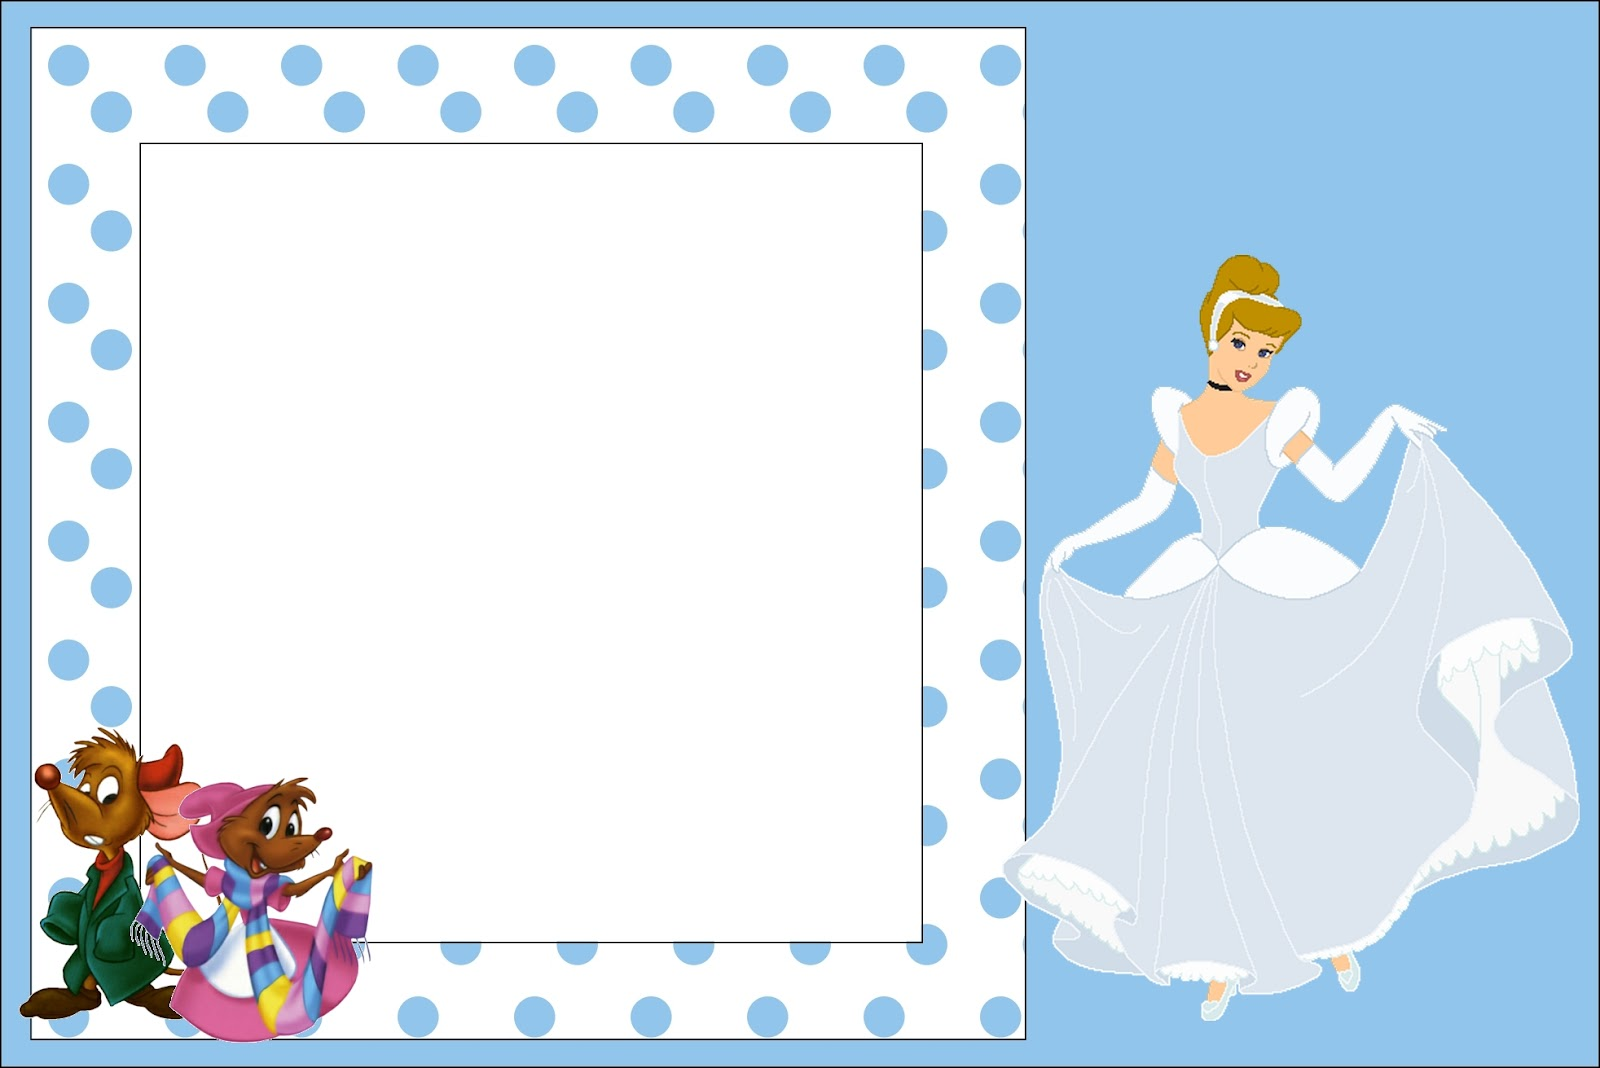 cinderella free printable invitations oh my fiesta in english. Black Bedroom Furniture Sets. Home Design Ideas